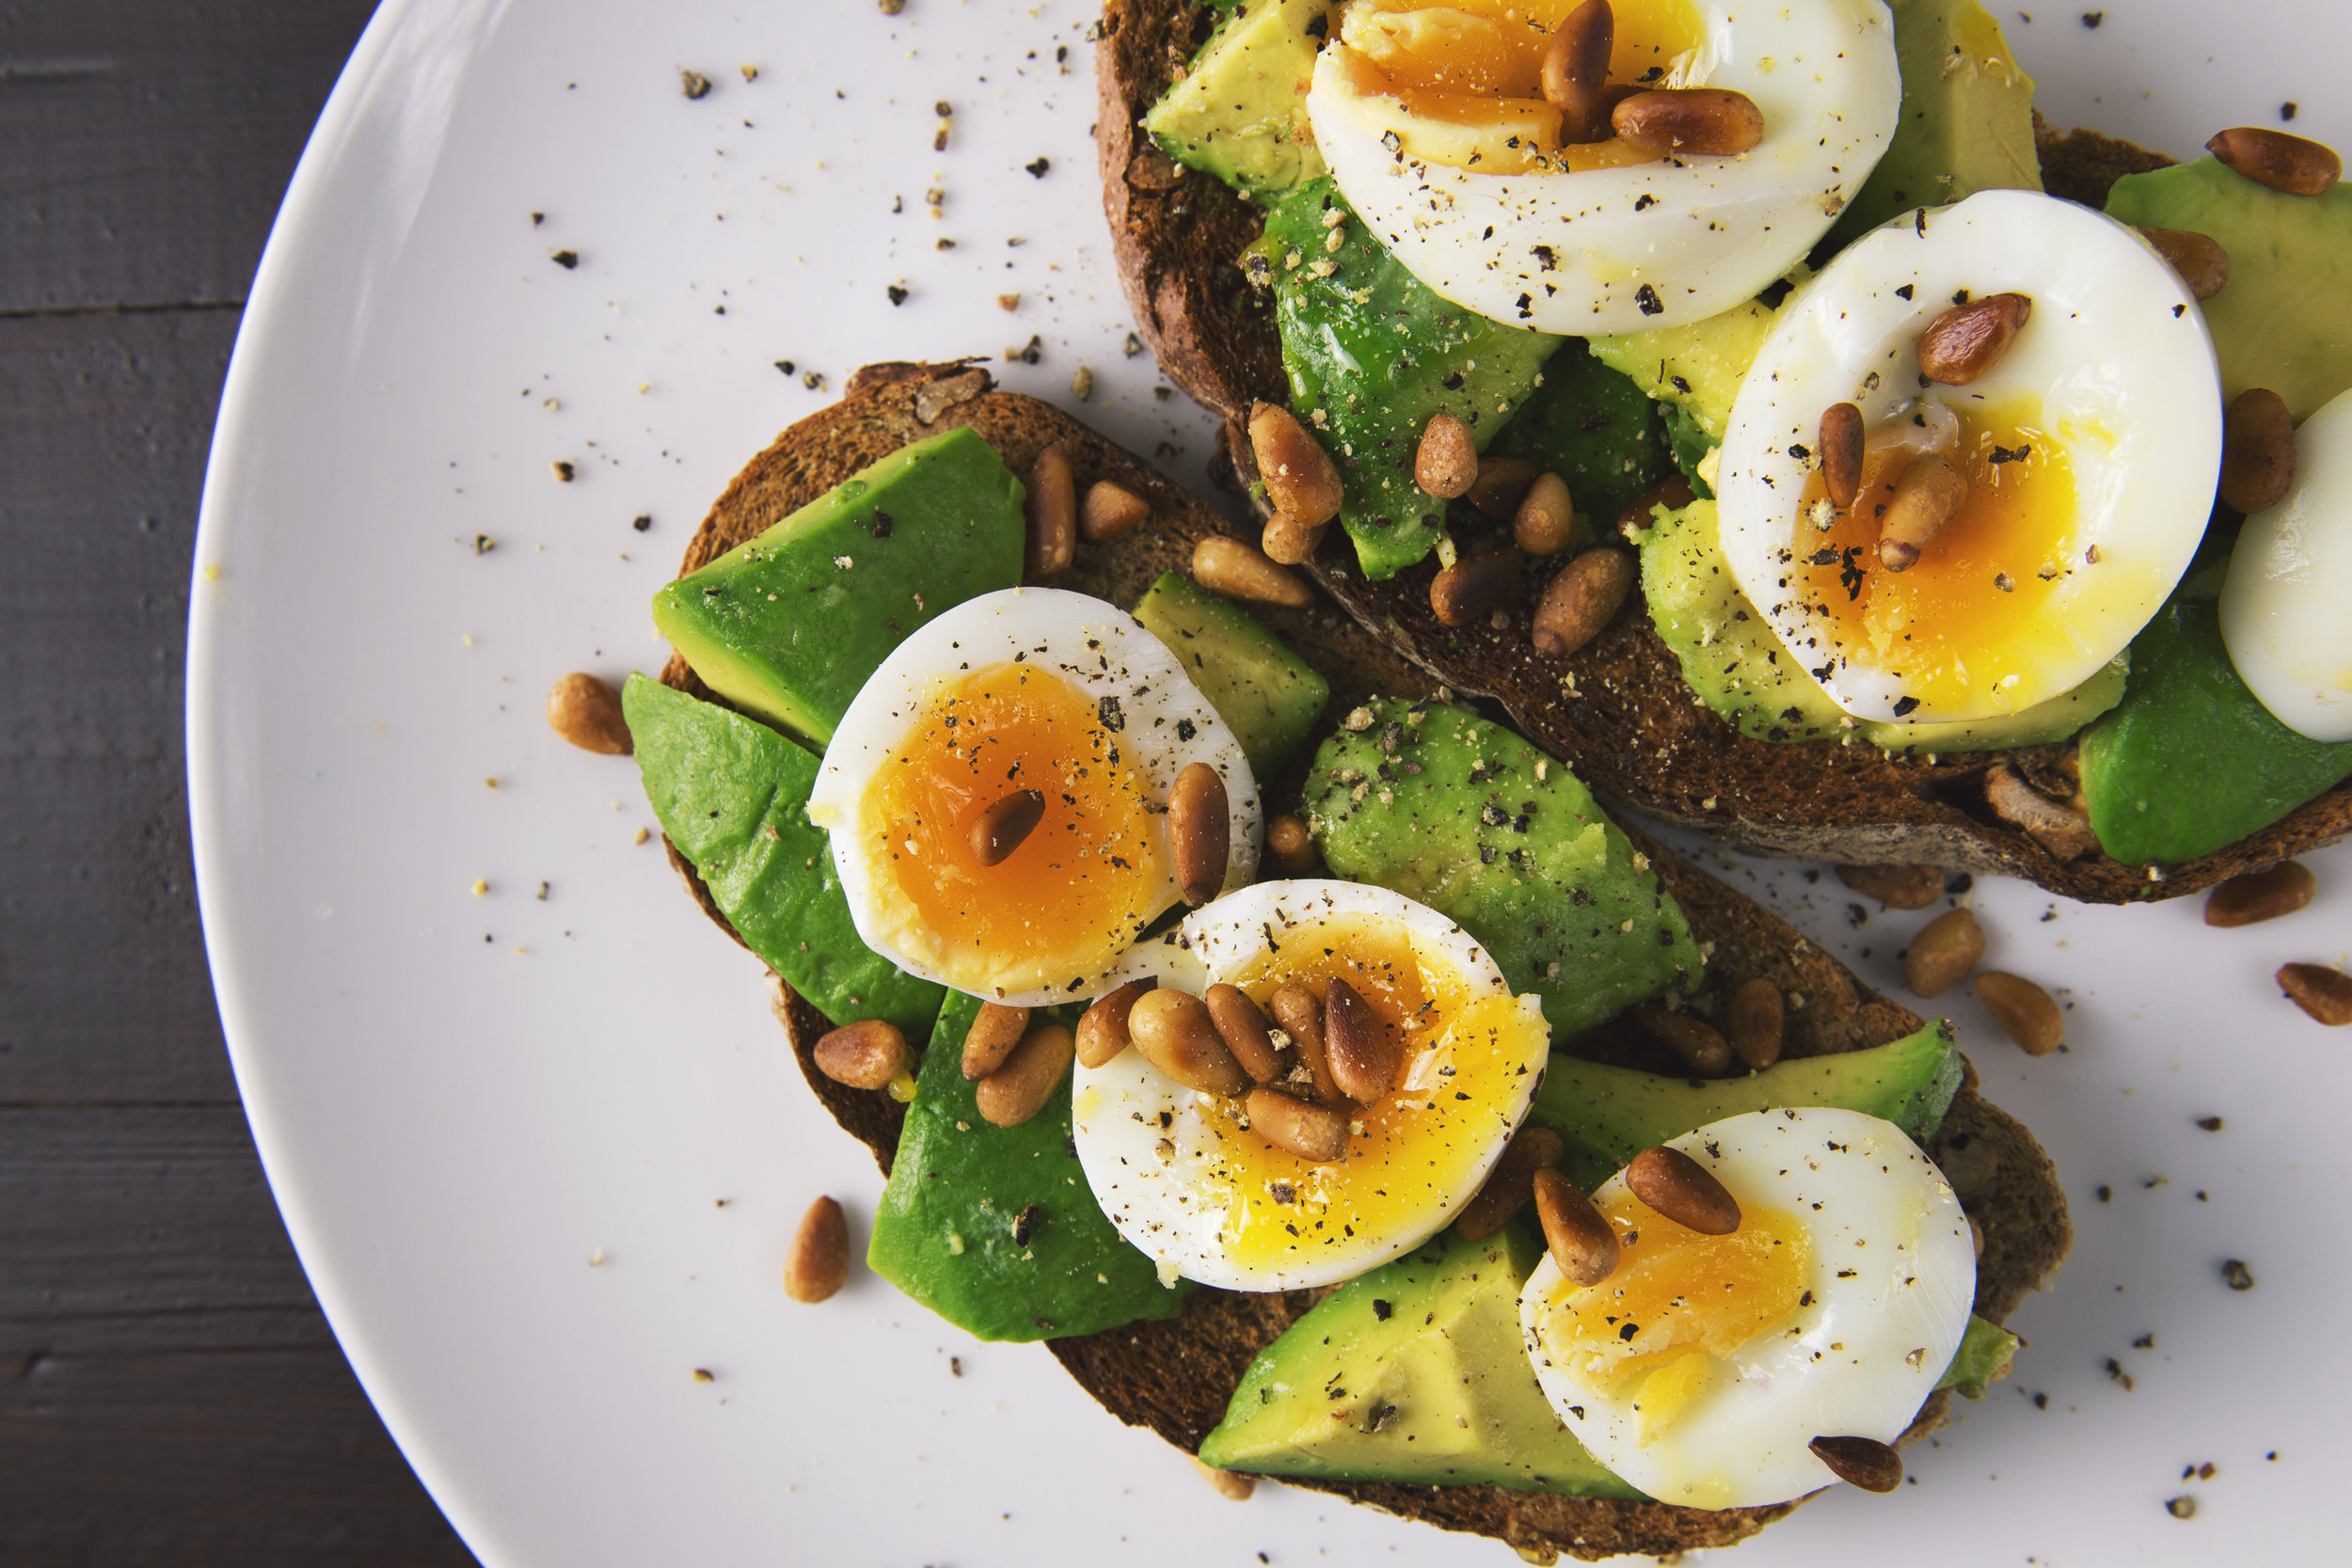 toast with egg and seeds